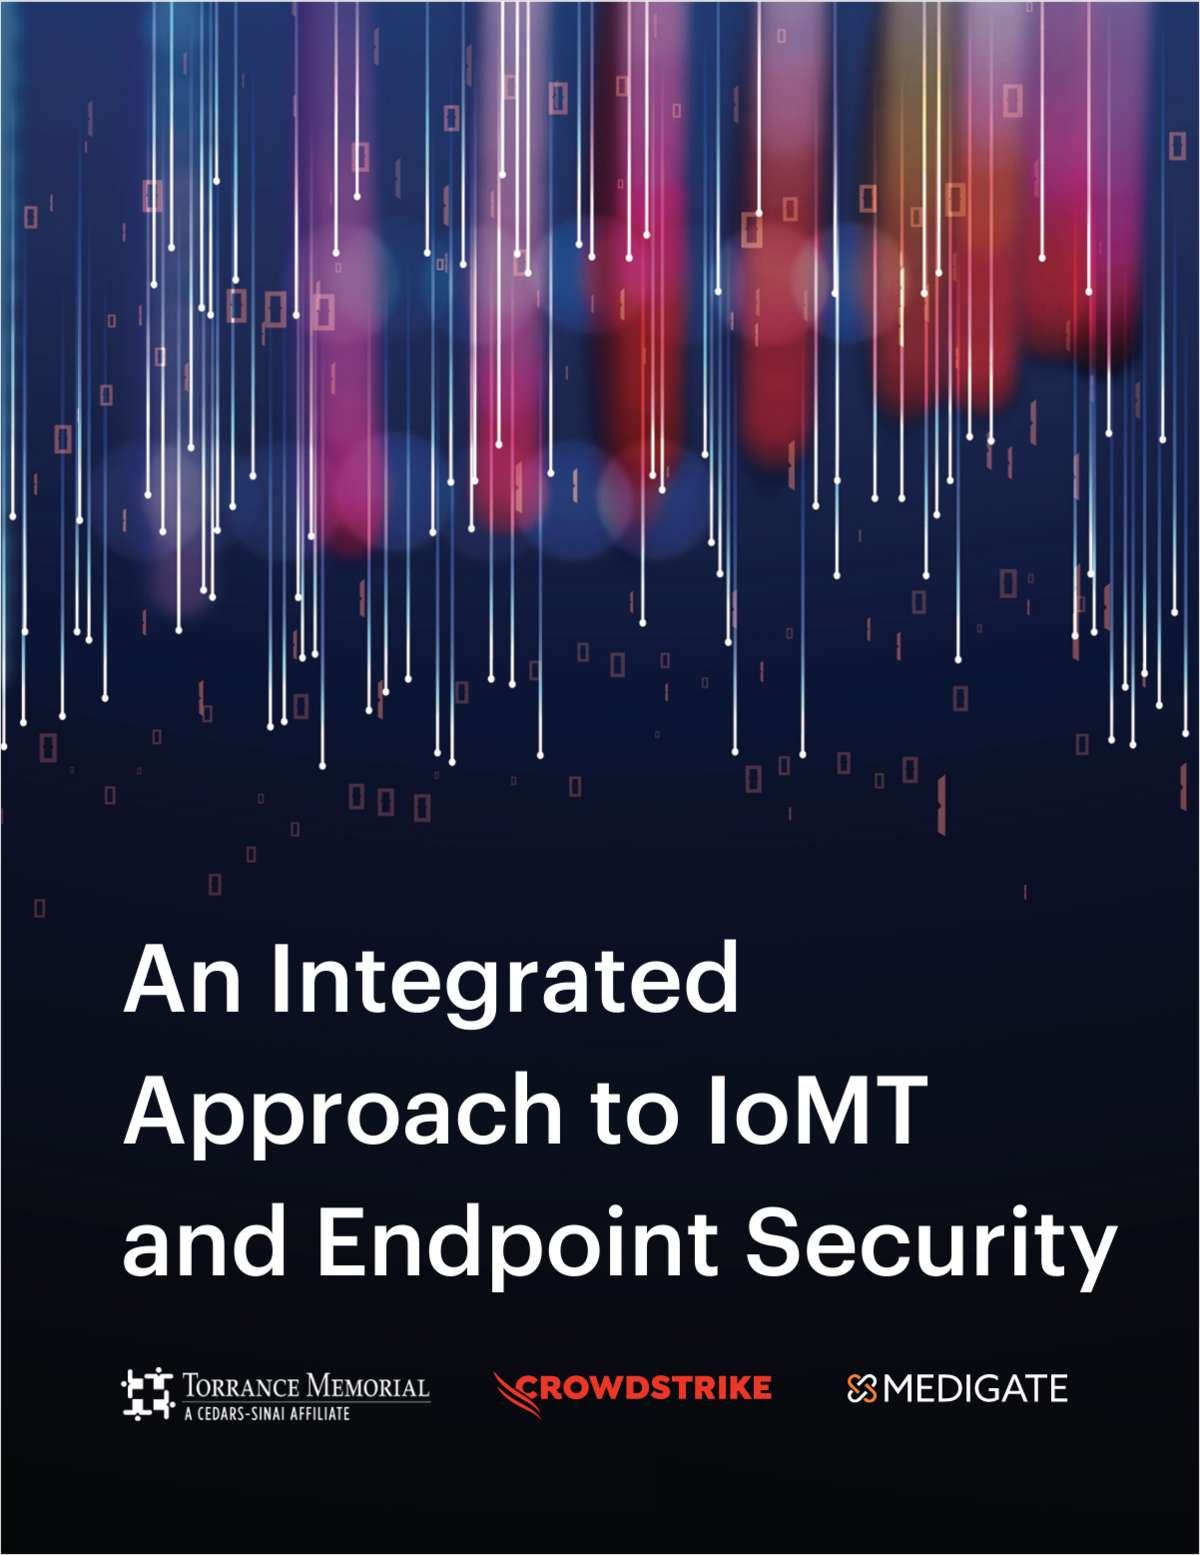 An Integrated Approach to IoMT and Endpoint Security